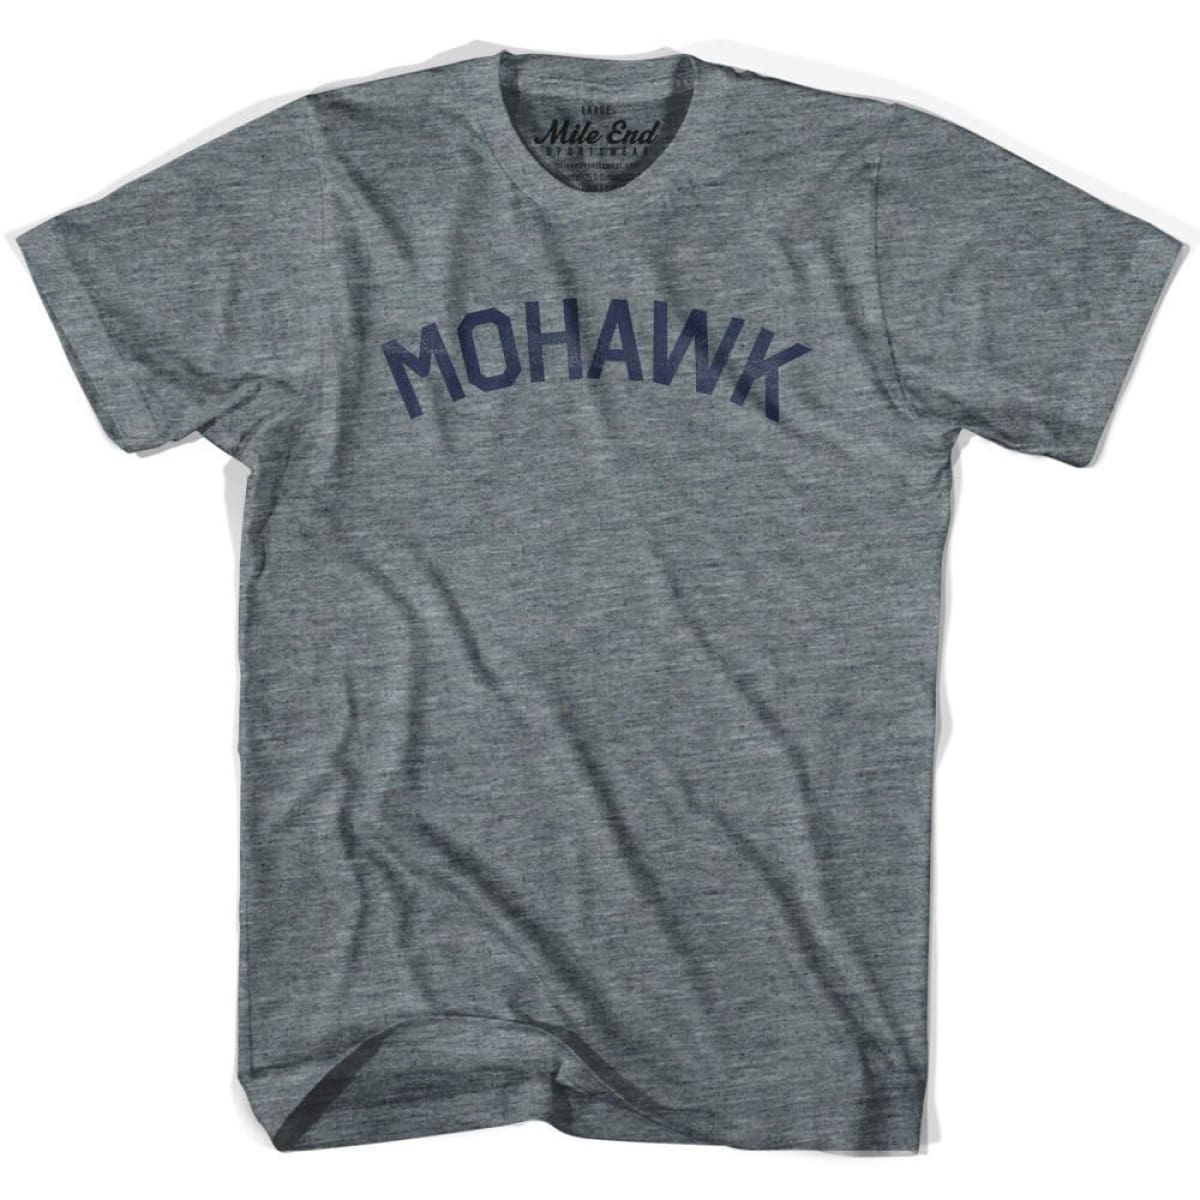 Mohawk Tribe Vintage T-shirt - Athletic Blue / Adult X-Small - Mile End City